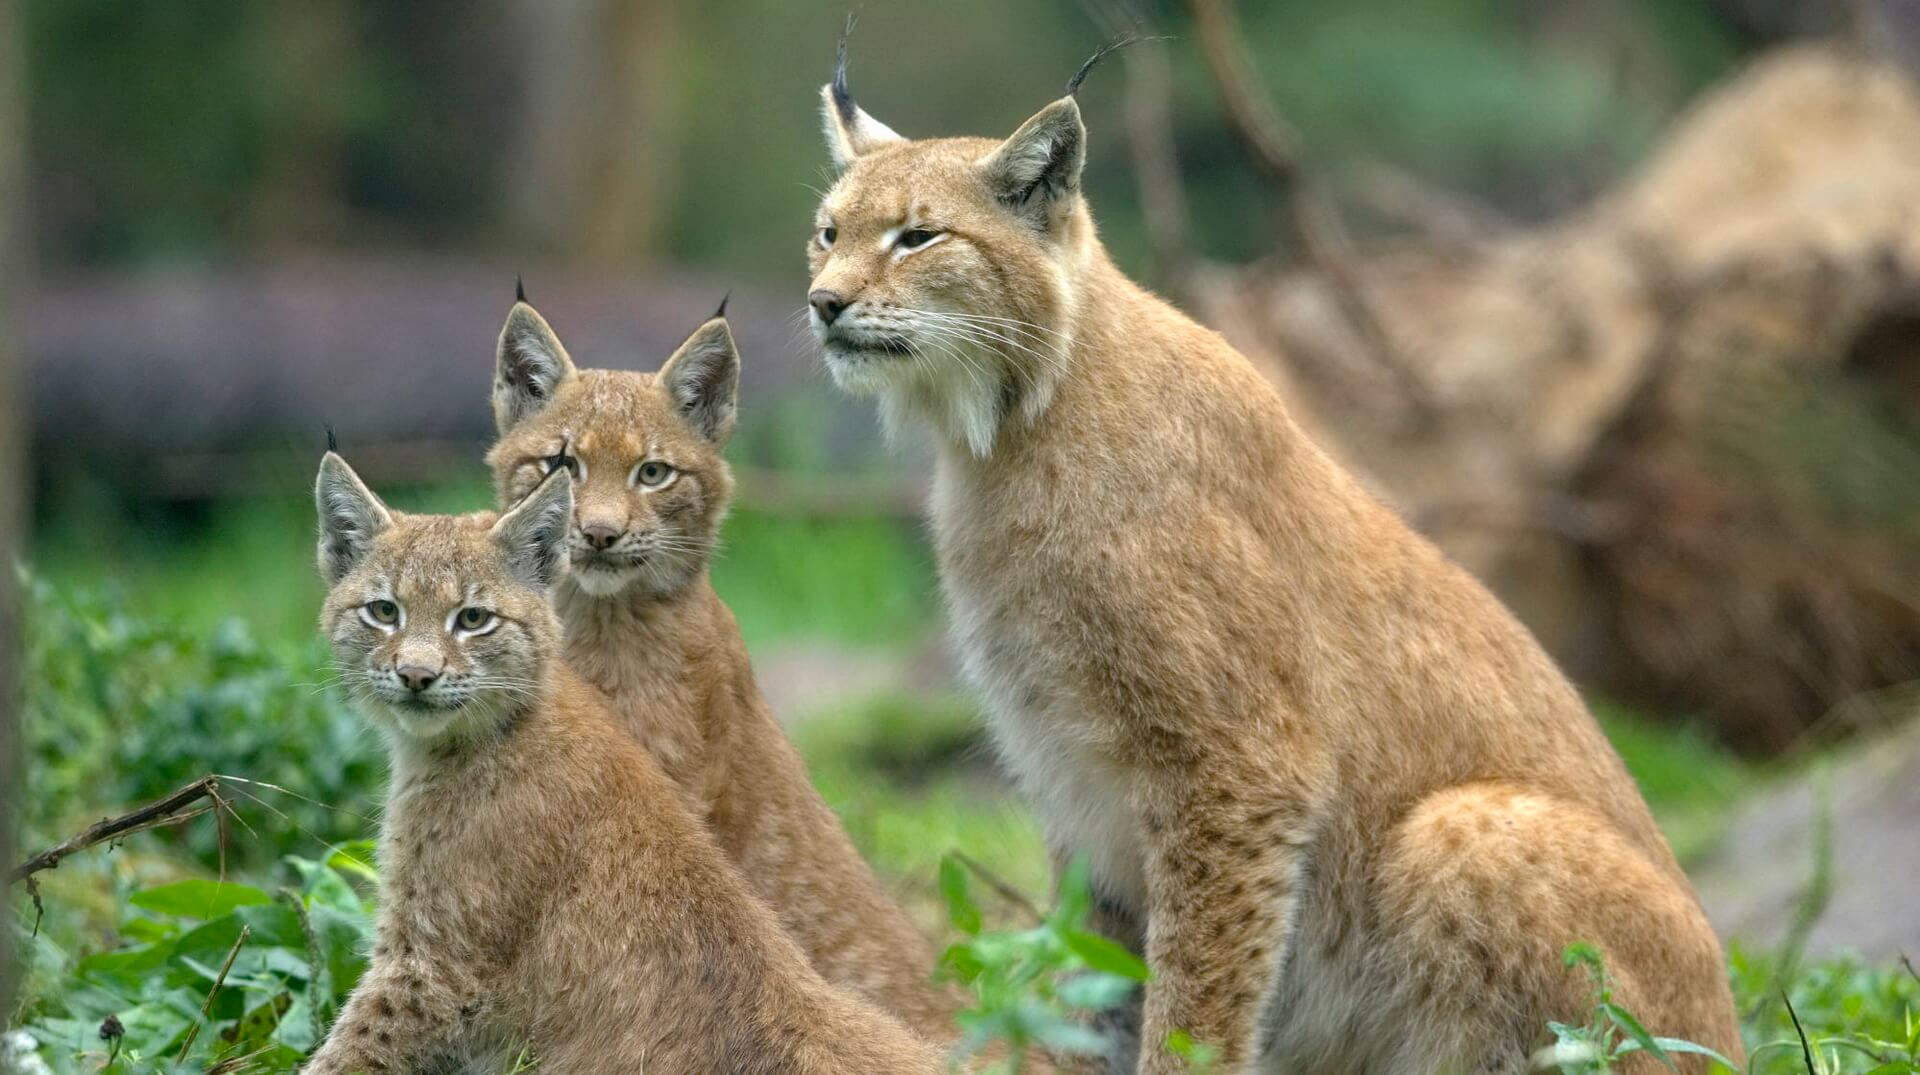 Eurasian Lynx (Lynx lynx) with cubs, Muenster, Germany via Wallpaper-Wiki